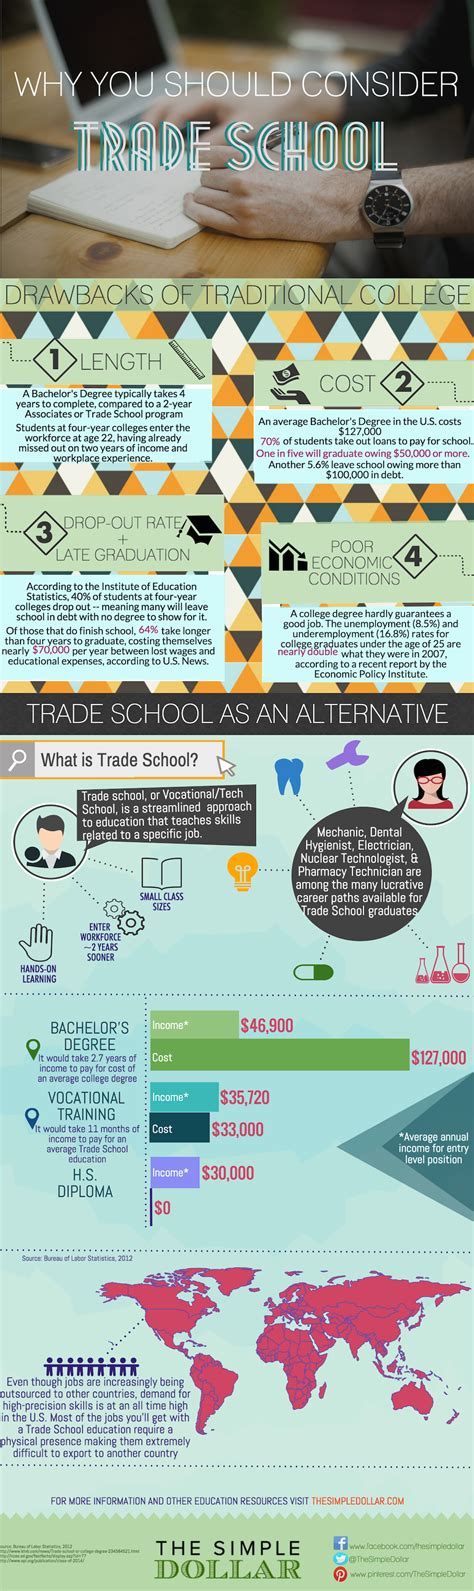 Why You Should Consider Trade School Instead of College